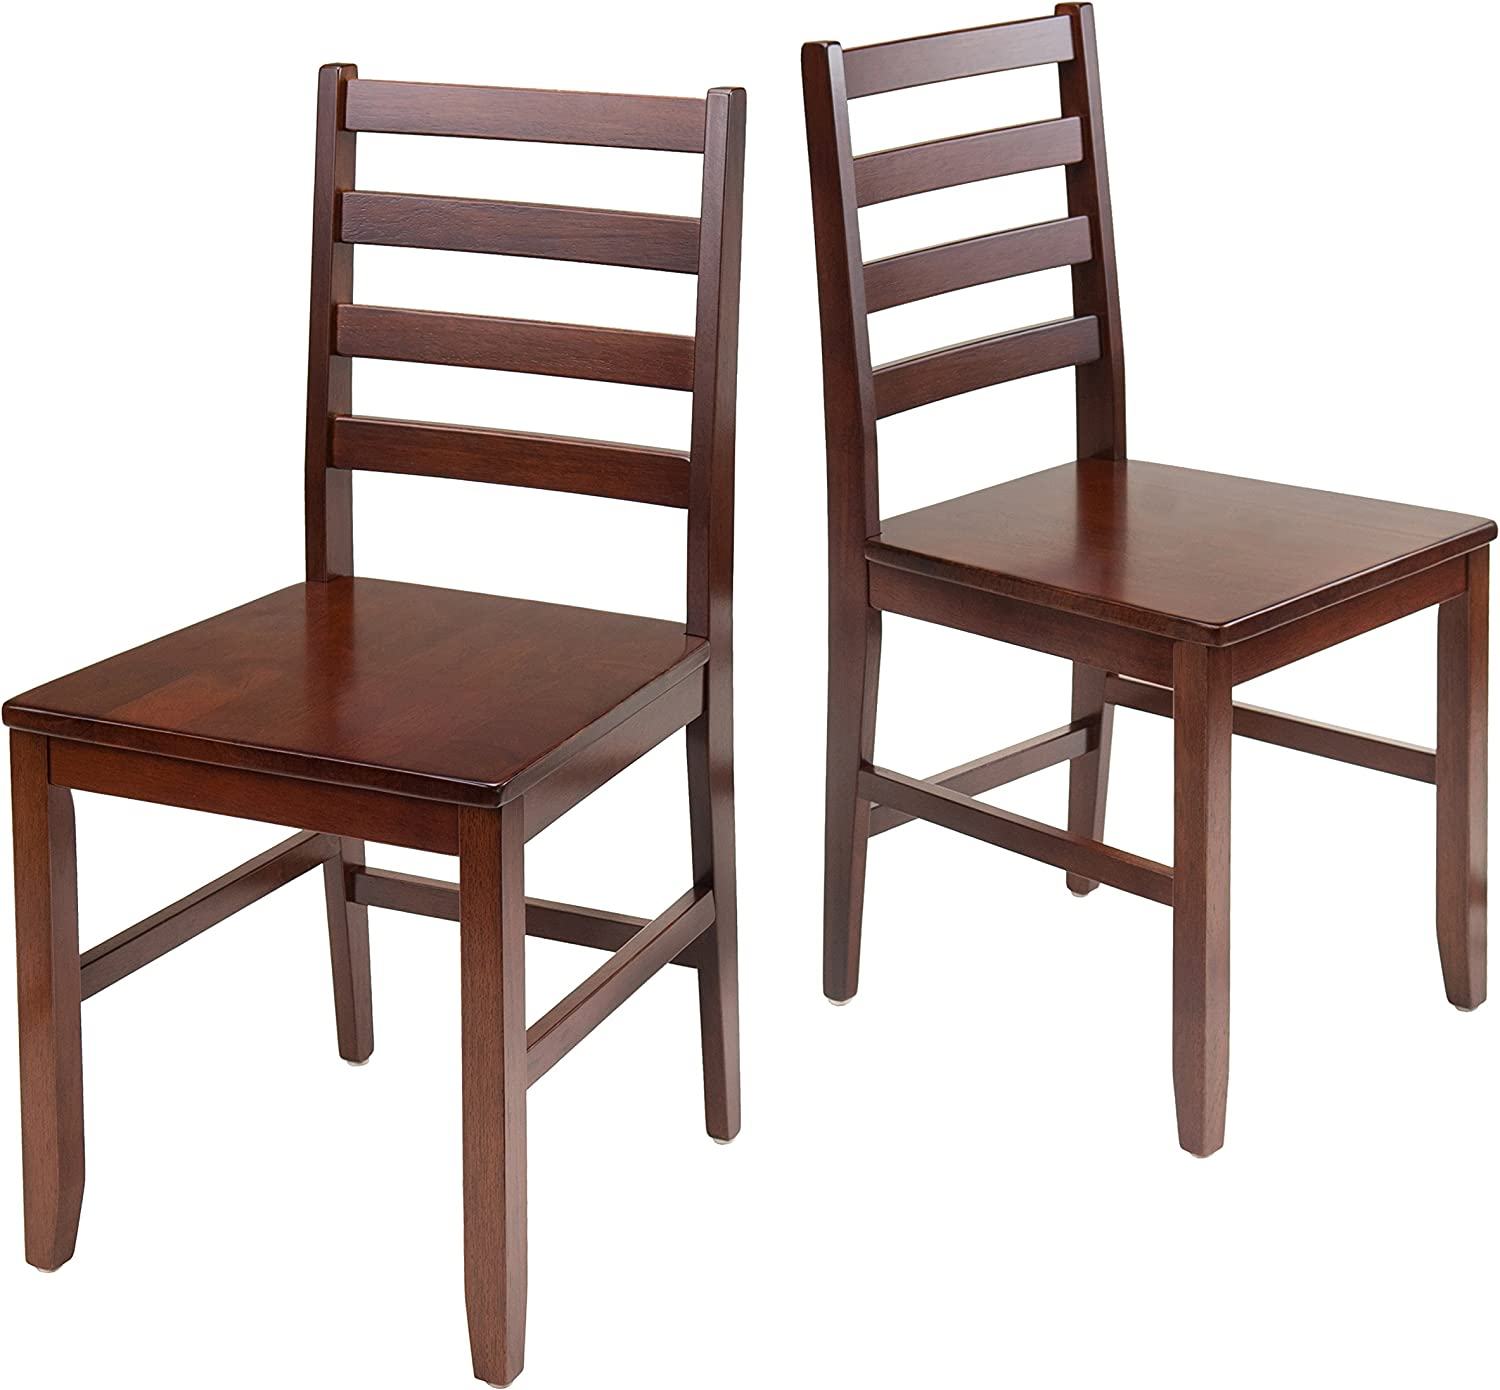 Winsome Wood 94236 Hamilton Seating, Antique Walnut